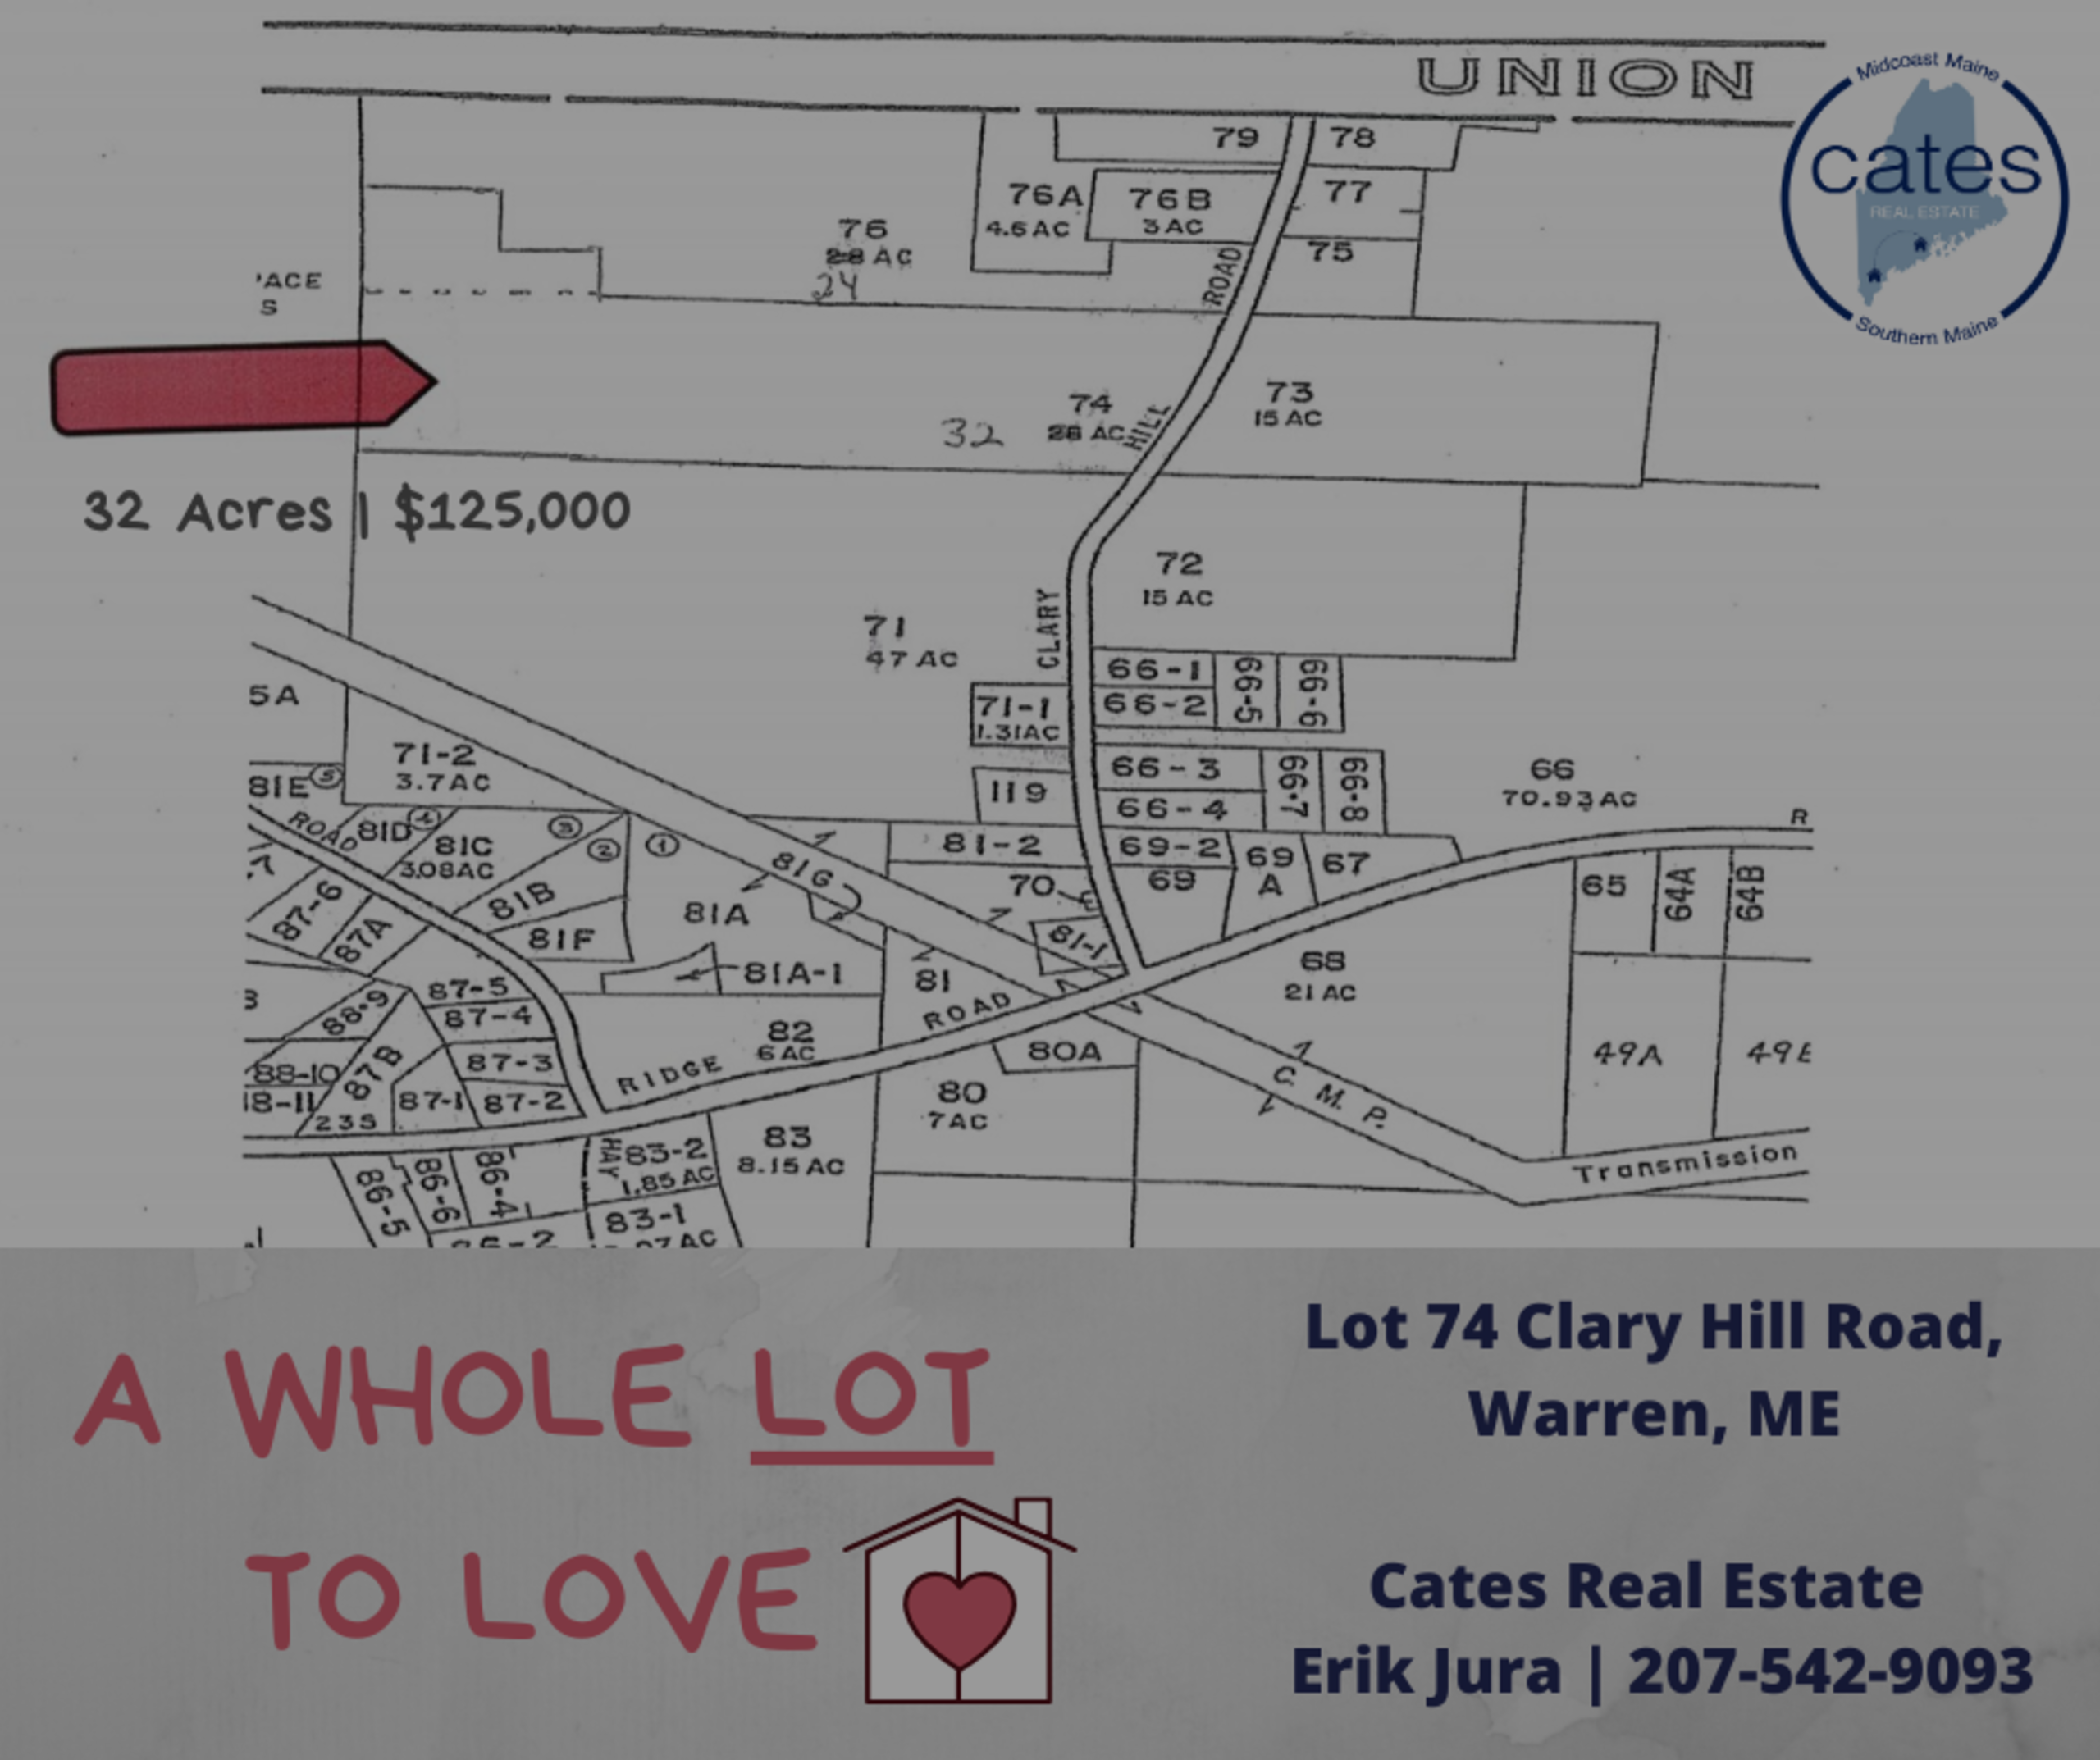 Lot 74 Clary Hill Road, Warren